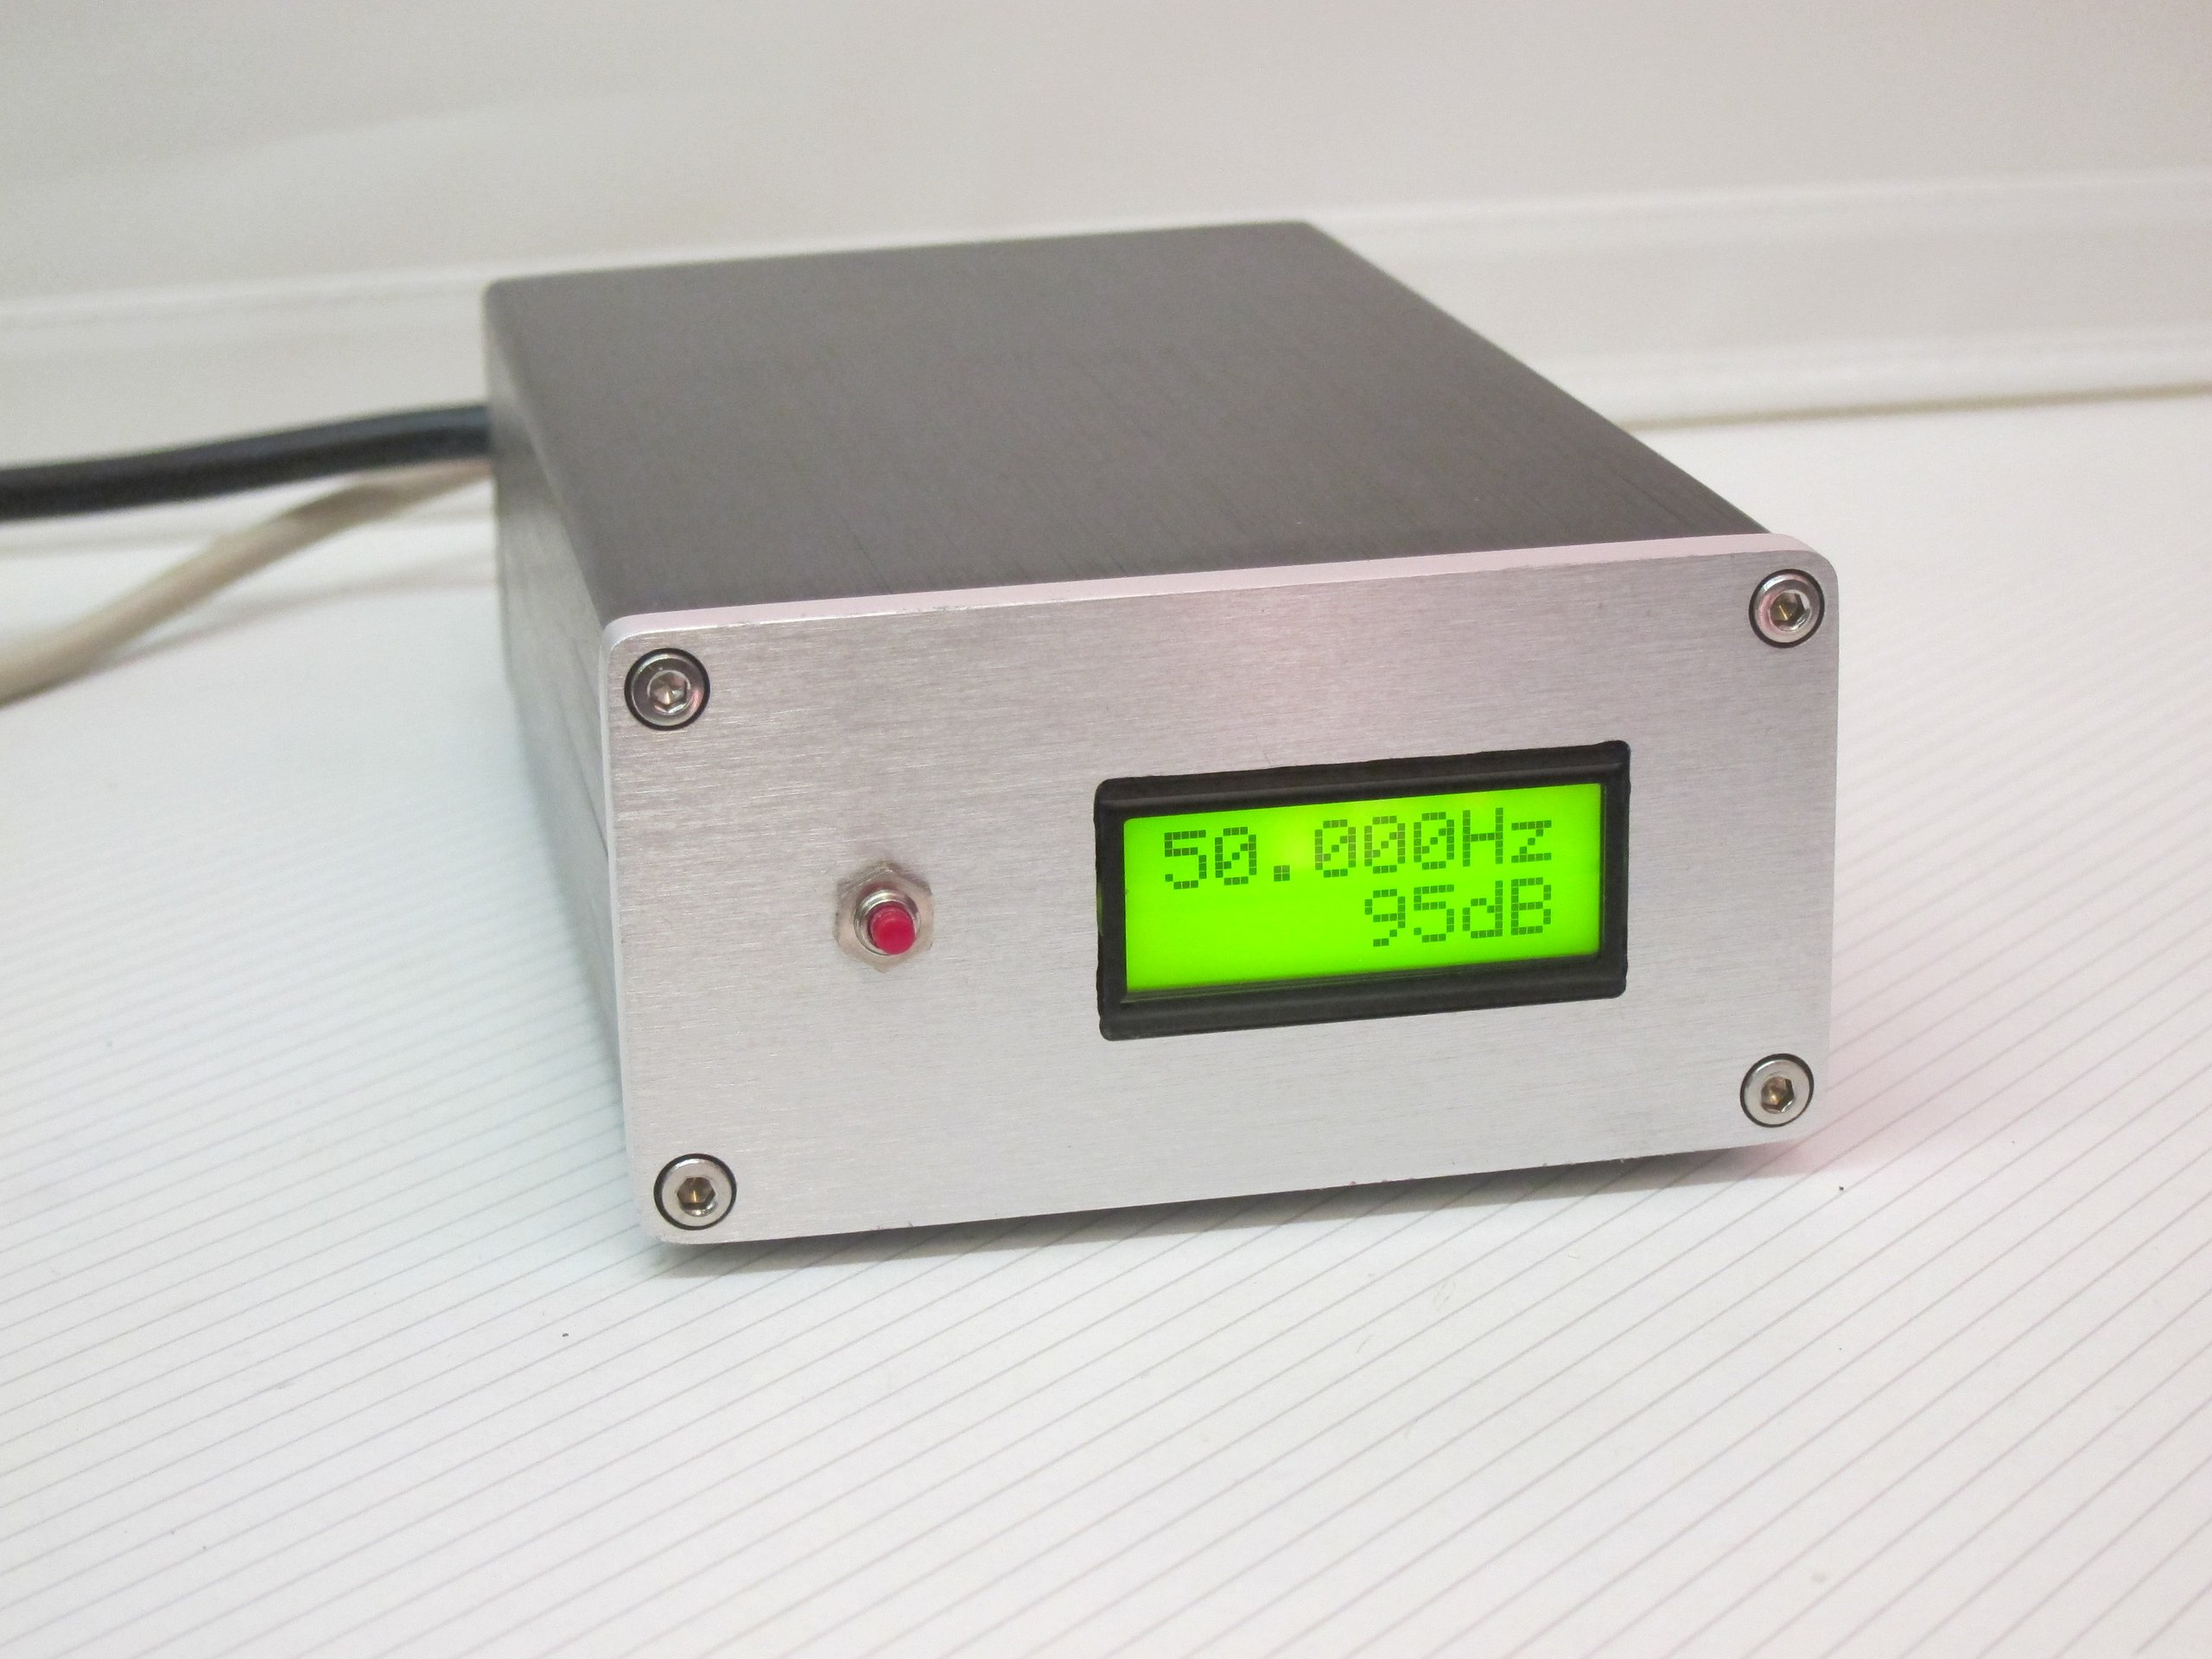 Sound Frequency Meter : Mains ac frequency meter from detlefs on tindie